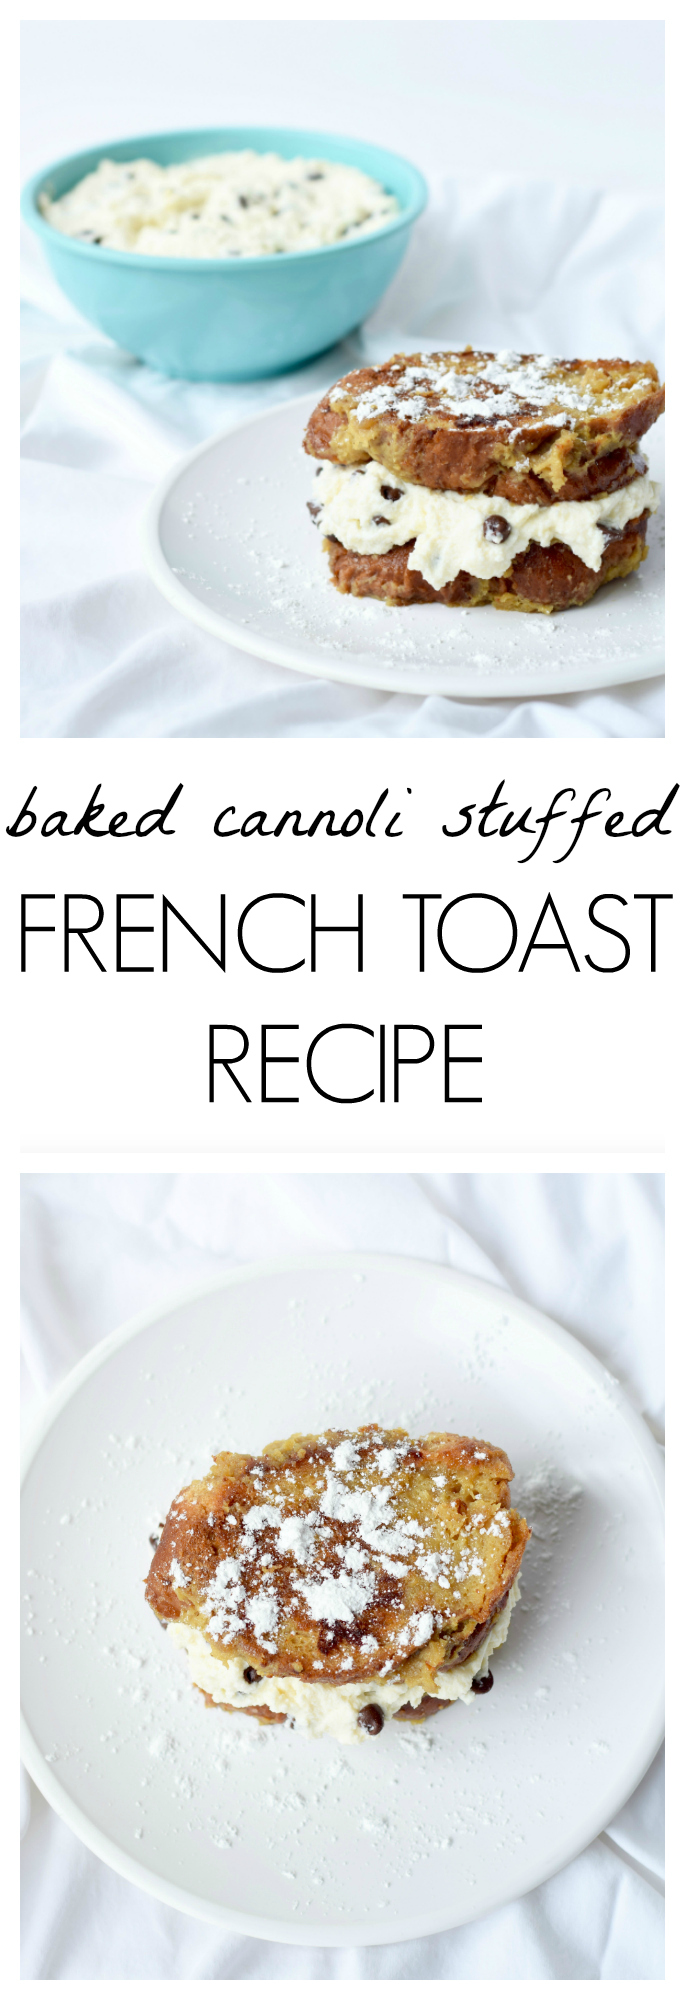 Baked Cannoli Stuffed French Toast Recipe